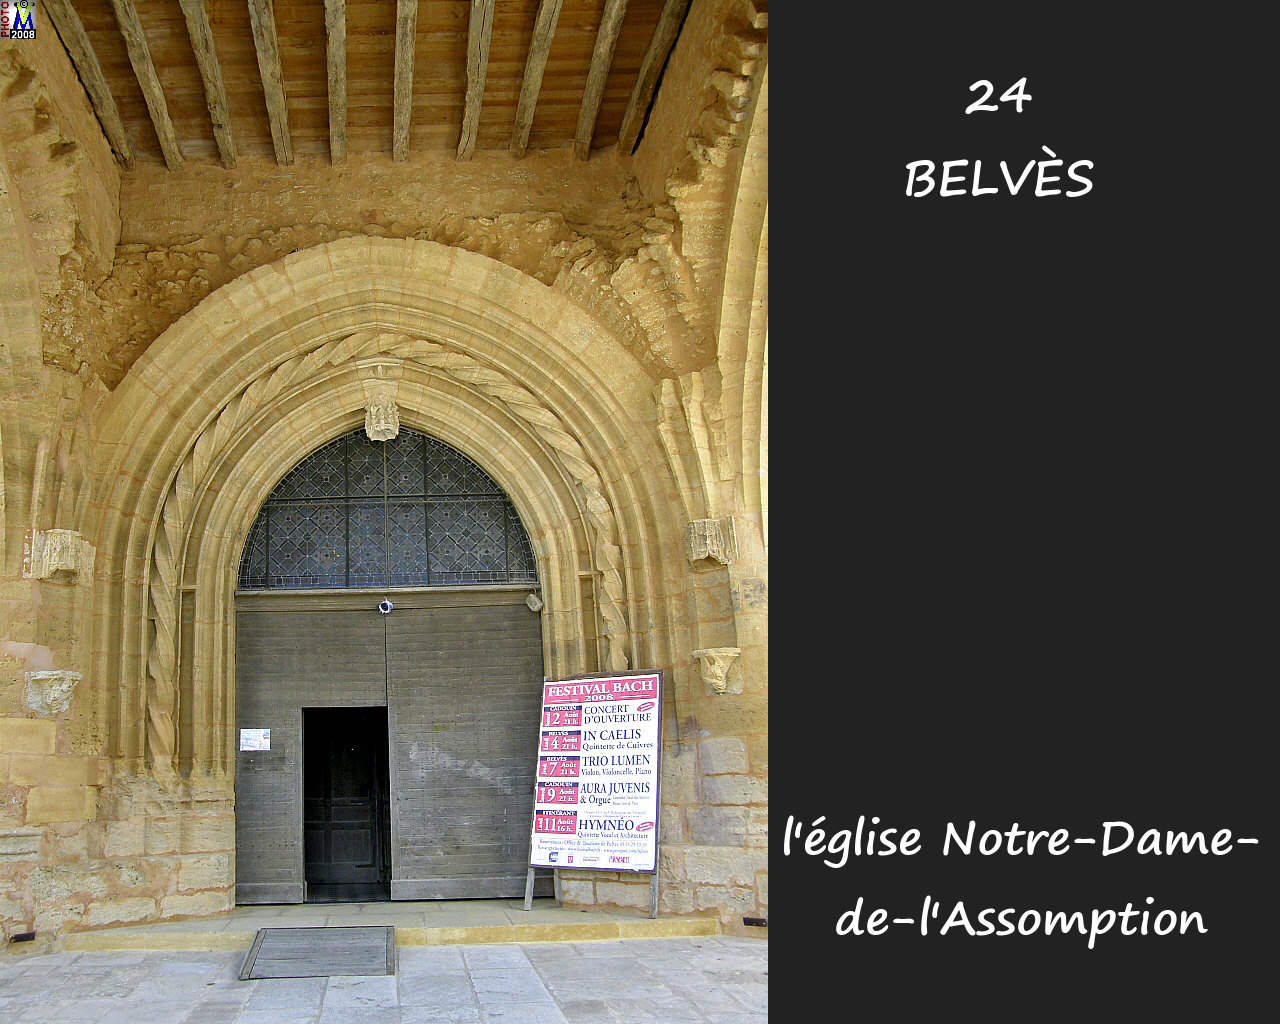 24BELVES_eglise_110.jpg